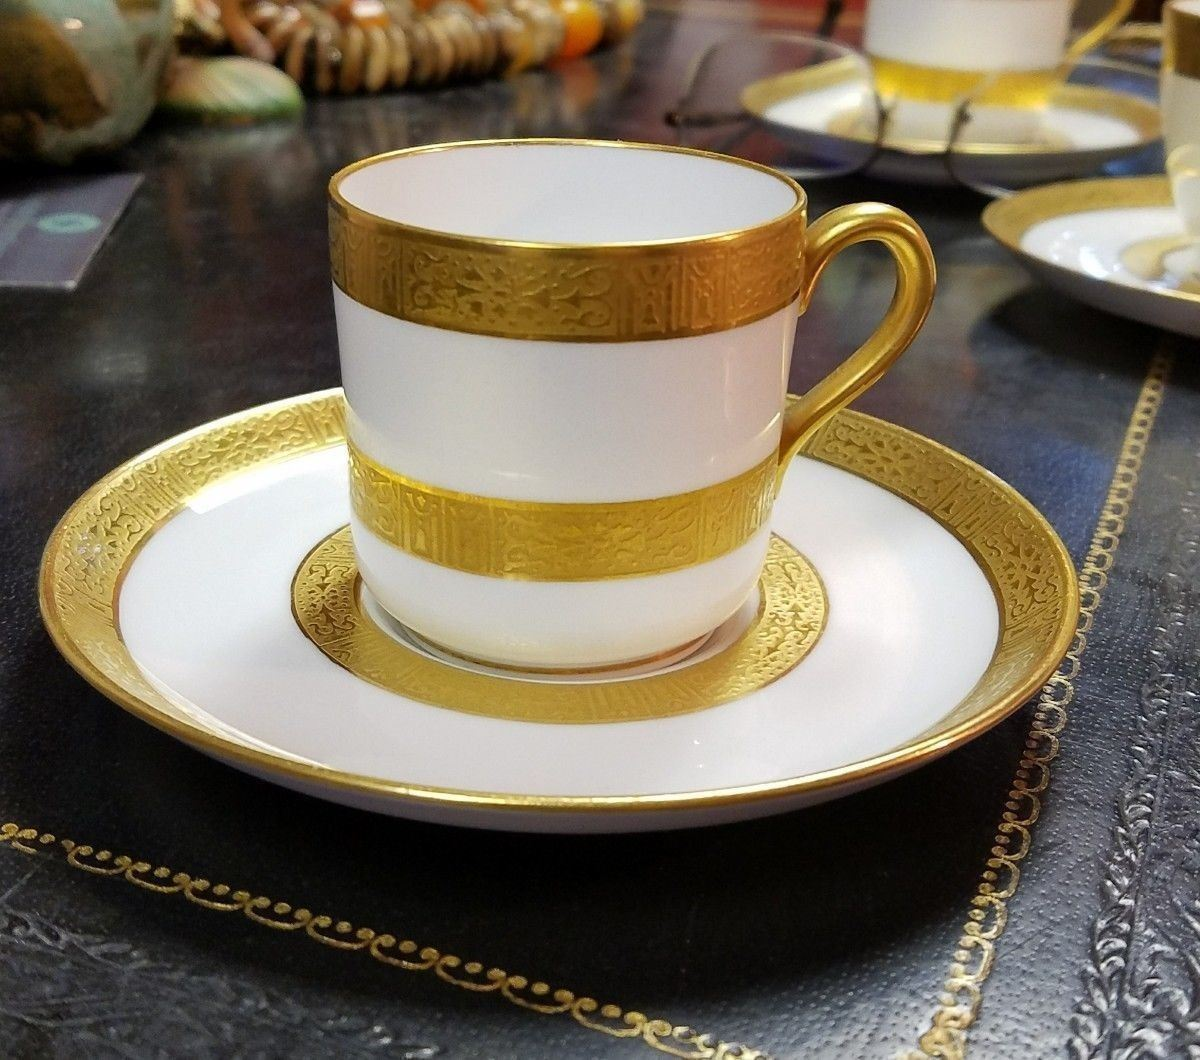 Copeland Spode Cup & Saucer: 1 customer review and 11 listings